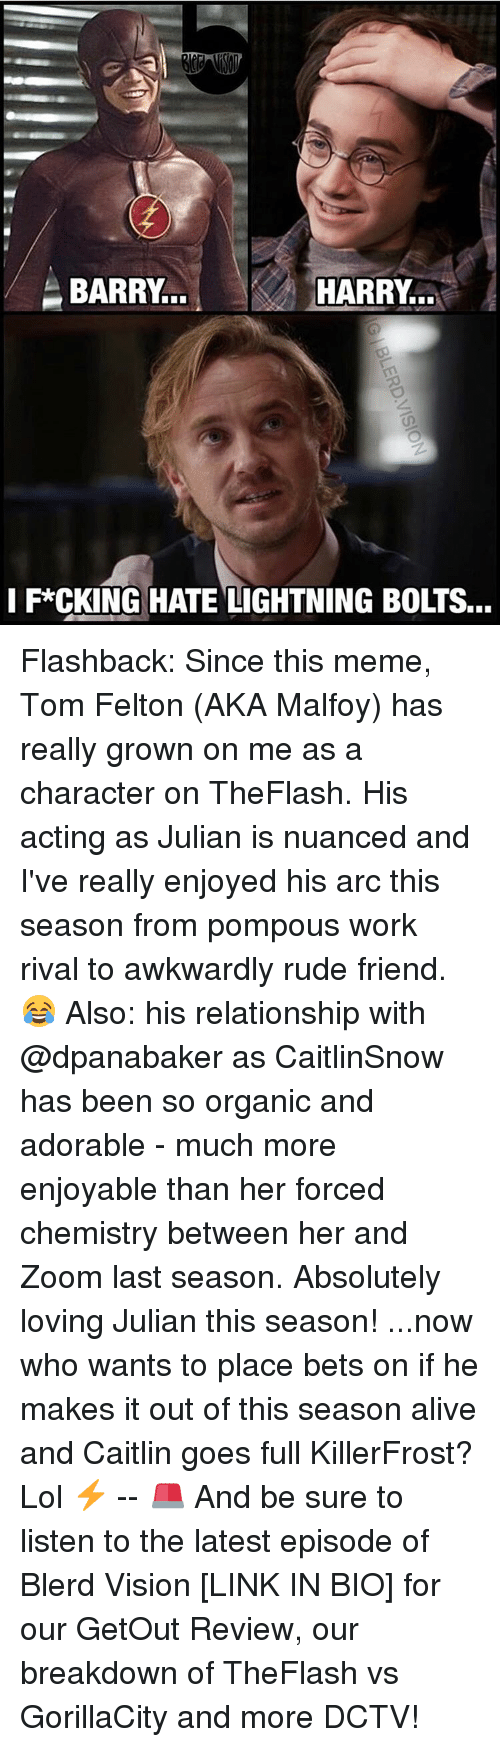 Memes, Relationships, and Rude: BARRY  HARRY...  I F*CKING HATE LIGHTNING BOLTS... Flashback: Since this meme, Tom Felton (AKA Malfoy) has really grown on me as a character on TheFlash. His acting as Julian is nuanced and I've really enjoyed his arc this season from pompous work rival to awkwardly rude friend. 😂 Also: his relationship with @dpanabaker as CaitlinSnow has been so organic and adorable - much more enjoyable than her forced chemistry between her and Zoom last season. Absolutely loving Julian this season! ...now who wants to place bets on if he makes it out of this season alive and Caitlin goes full KillerFrost? Lol ⚡️ -- 🚨 And be sure to listen to the latest episode of Blerd Vision [LINK IN BIO] for our GetOut Review, our breakdown of TheFlash vs GorillaCity and more DCTV!